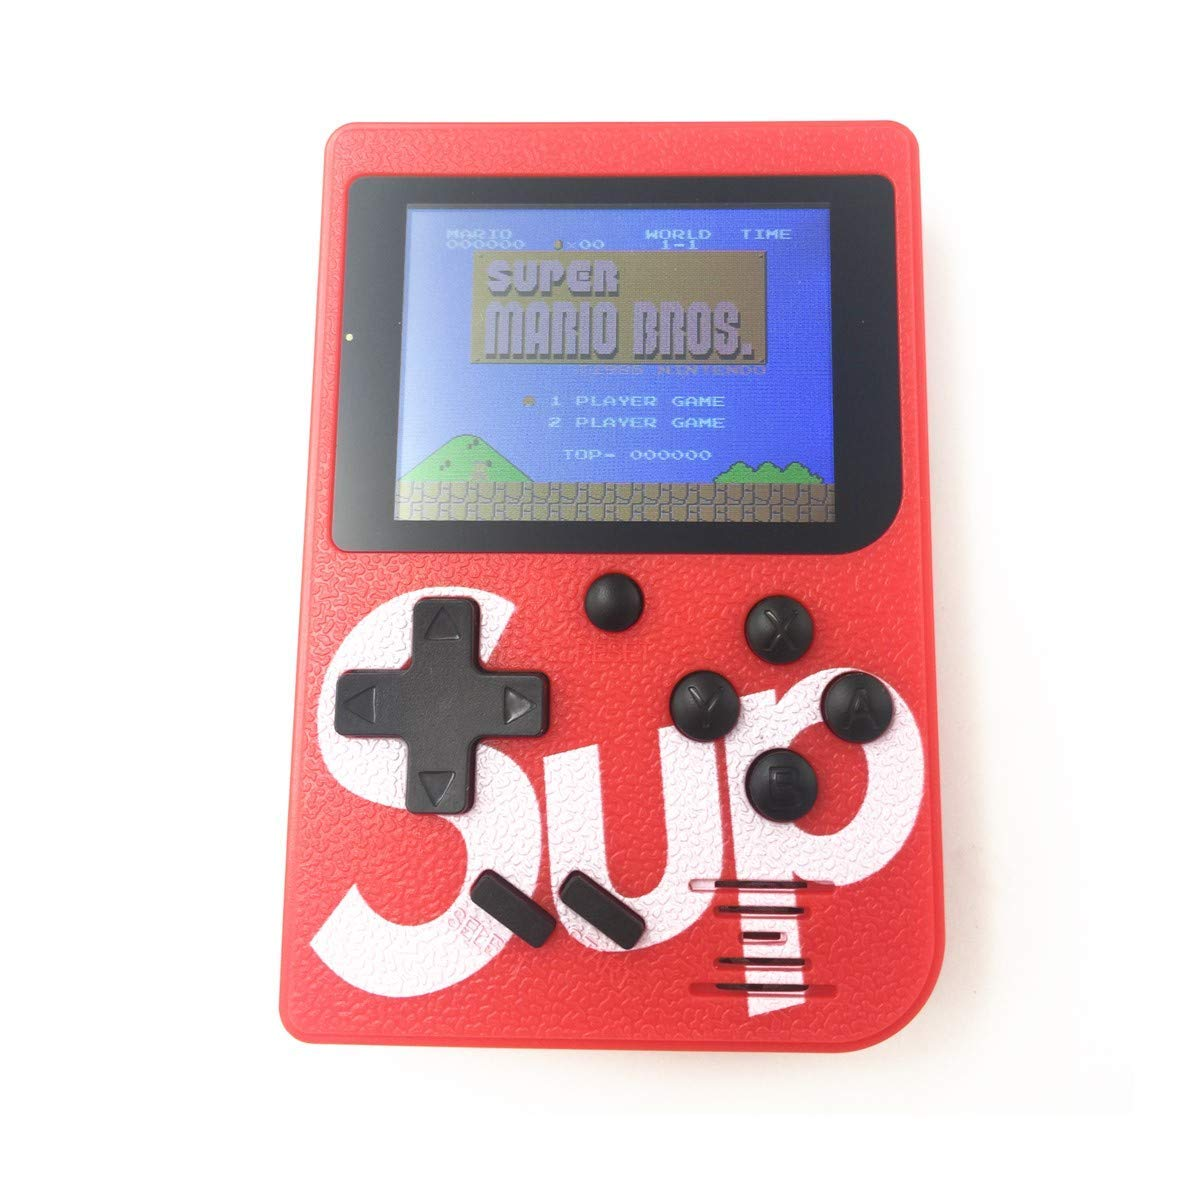 STETION Handheld Game Console, 2.4 Screen 129 Games 8 Bit Portable Handheld Game Console Player Good Gift for Children Classical Games (Red Custom Version)